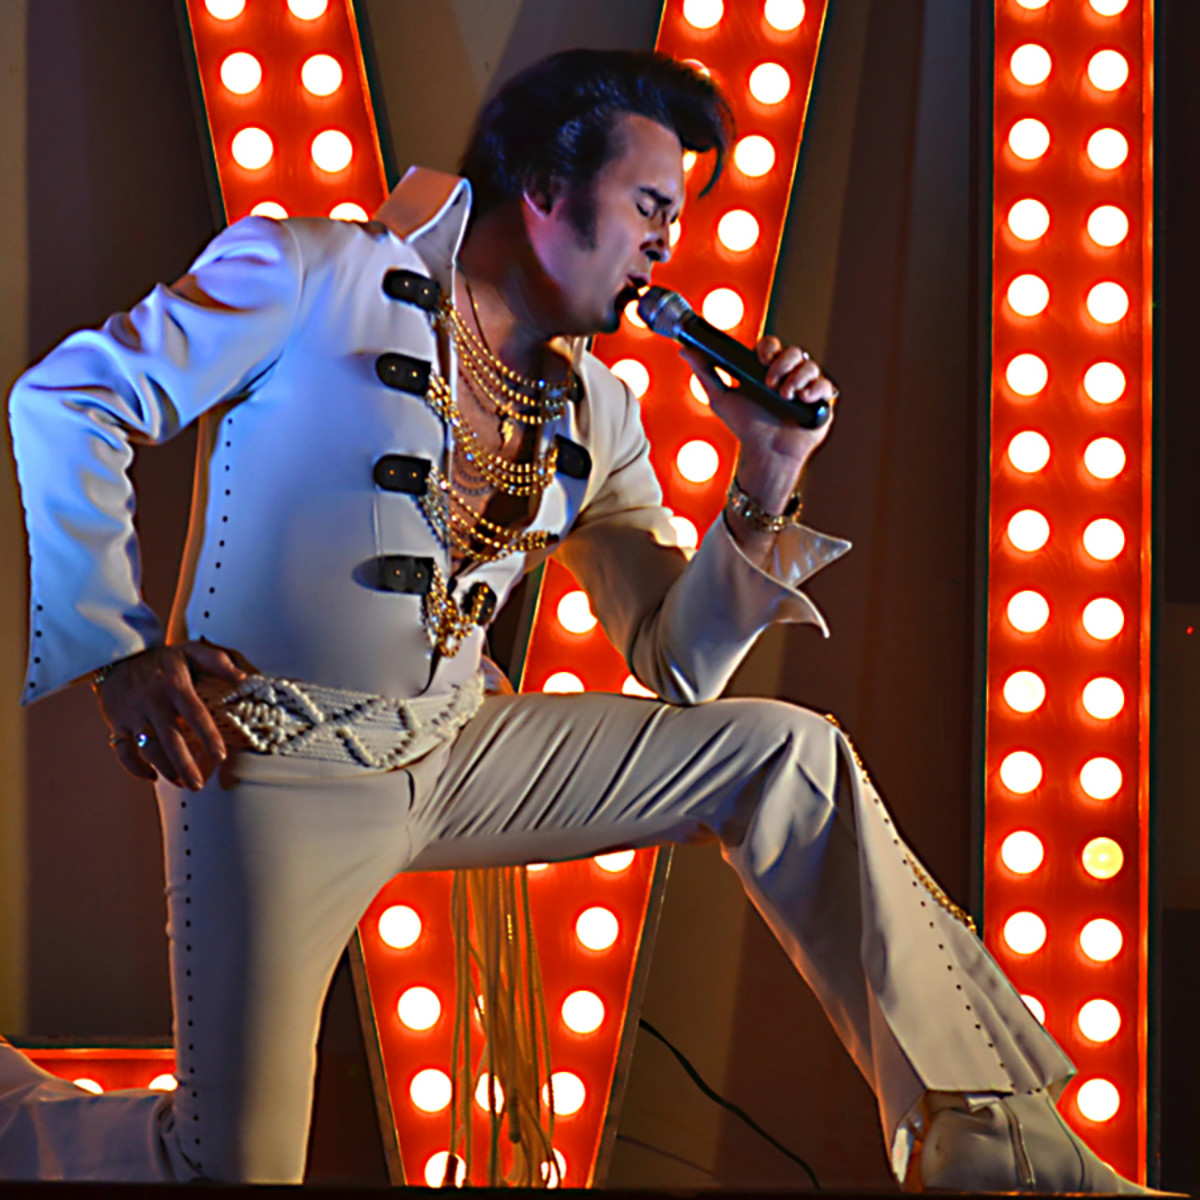 2019 Concerts in the Garden: A Tribute to Elvis with Kraig Parker